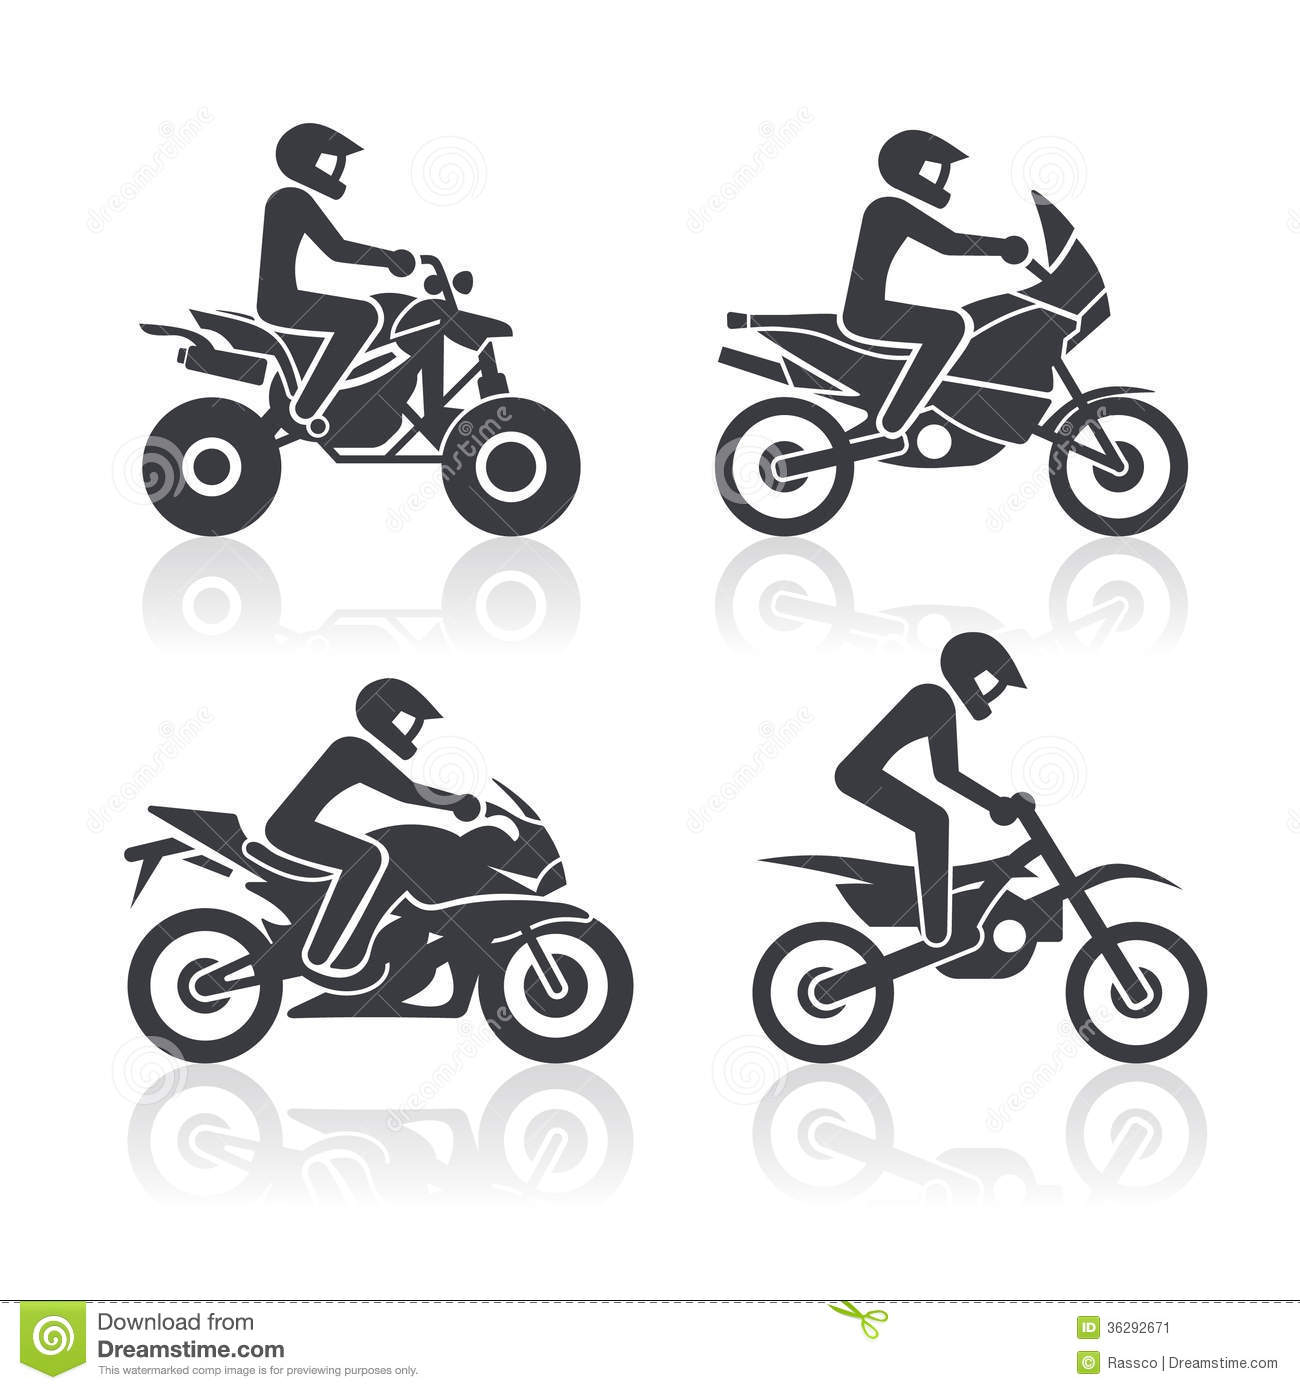 Black and white icons of motorcycles representing different riding ...